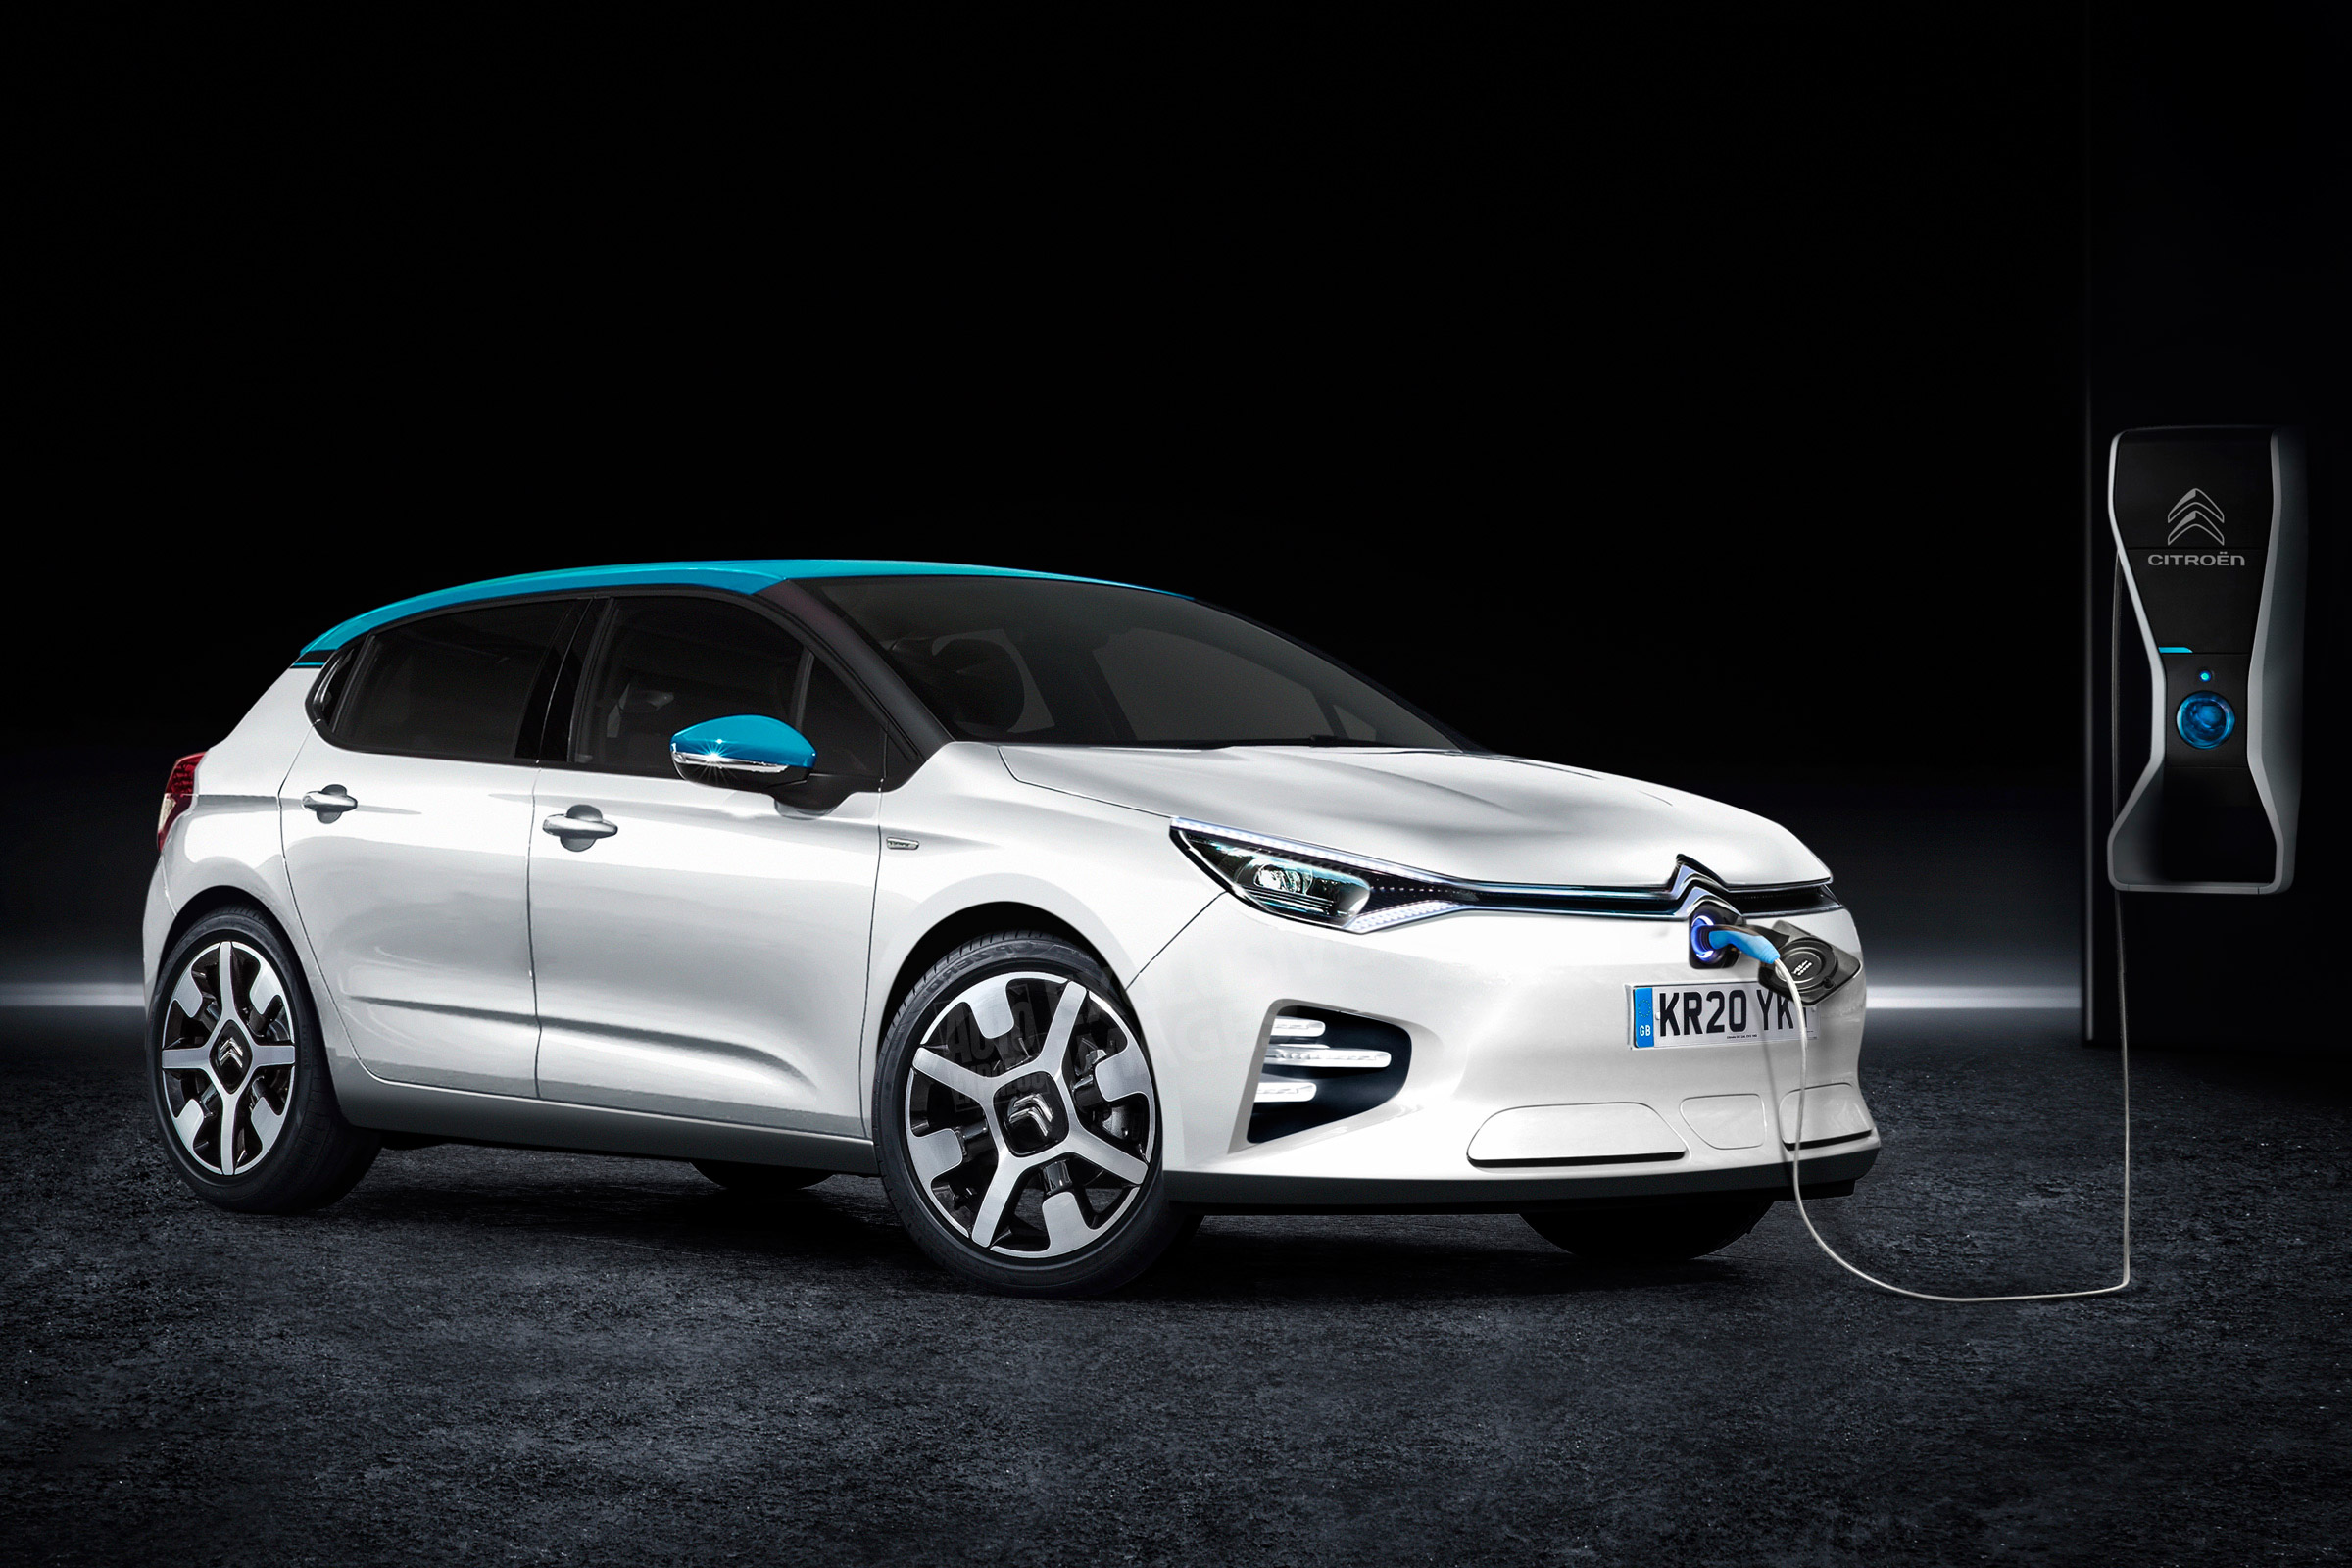 43 The Best 2020 New Citroen C4 Redesign and Review